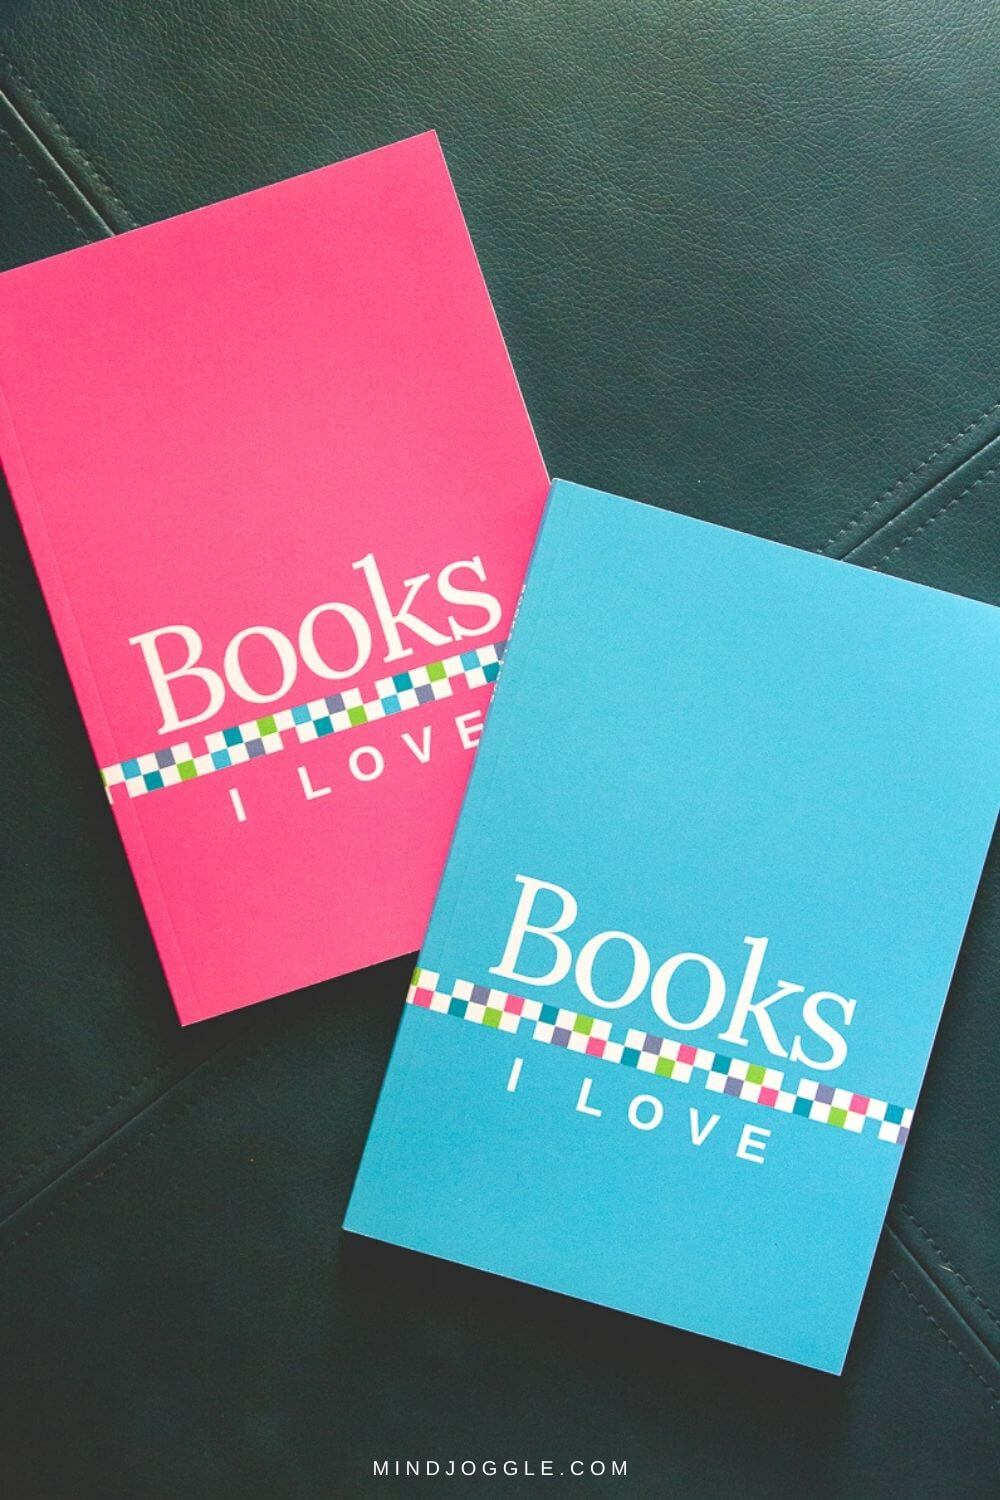 Books I Love journals to record your favorite books